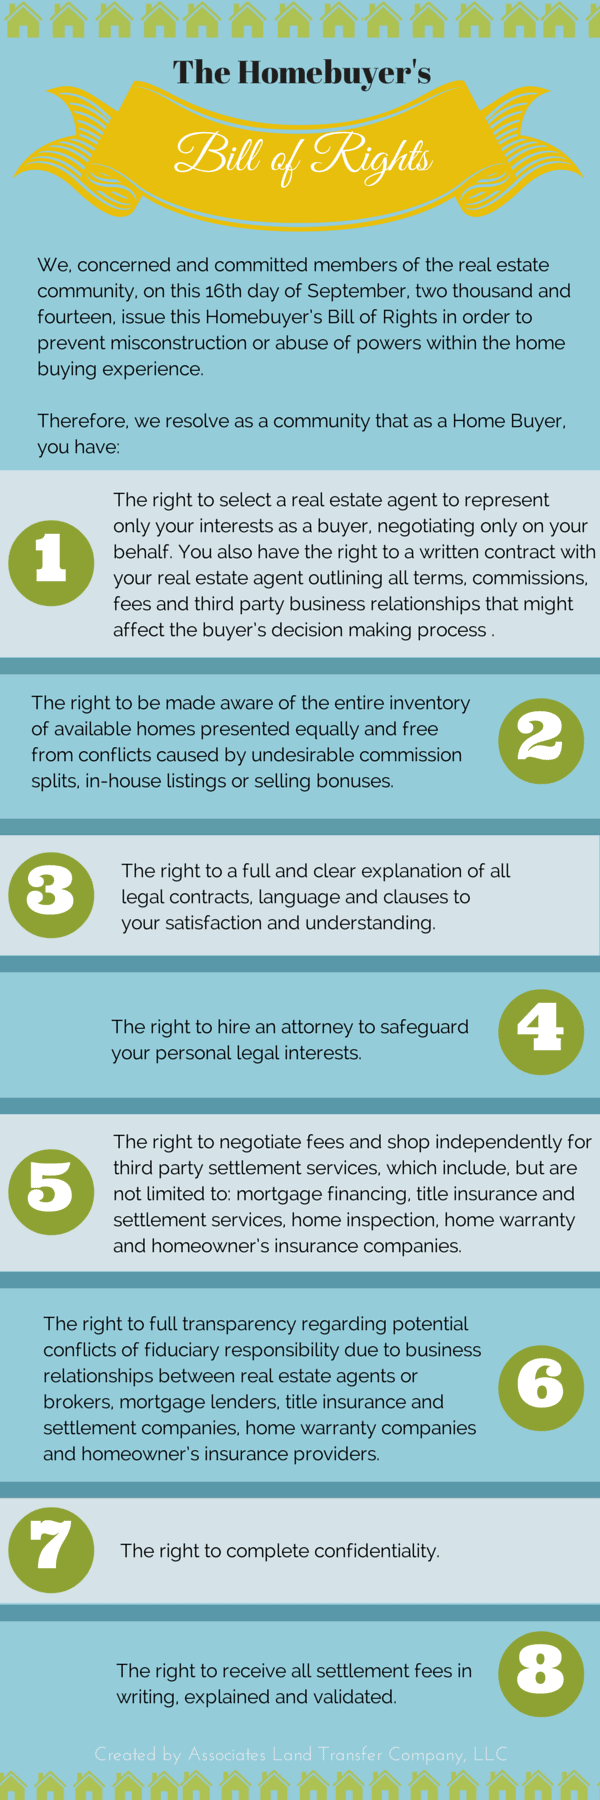 Homebuyers Bill of Rights